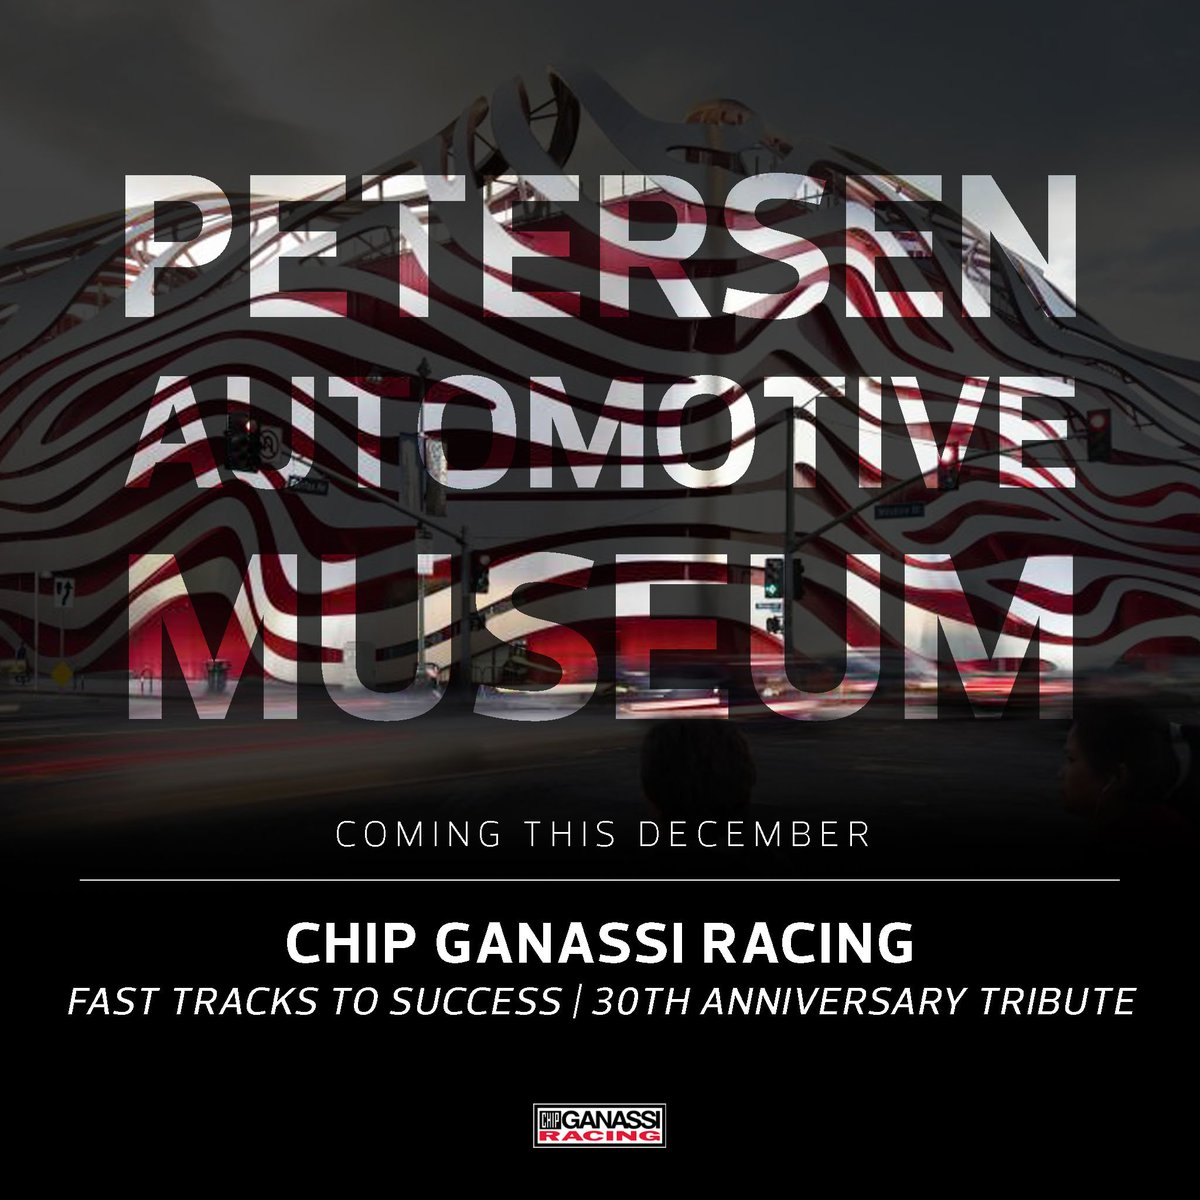 """This December, the @Petersen_Museum will debut a new exhibit titled """"Chip Ganassi Racing: Fast Tracks to Success   30th Anniversary Tribute"""" exemplifying the numerous #INDYCAR, #NASCAR and #IMSA racing successes of @GanassiChip.  For more info, visit http://bit.ly/2NIR95K."""